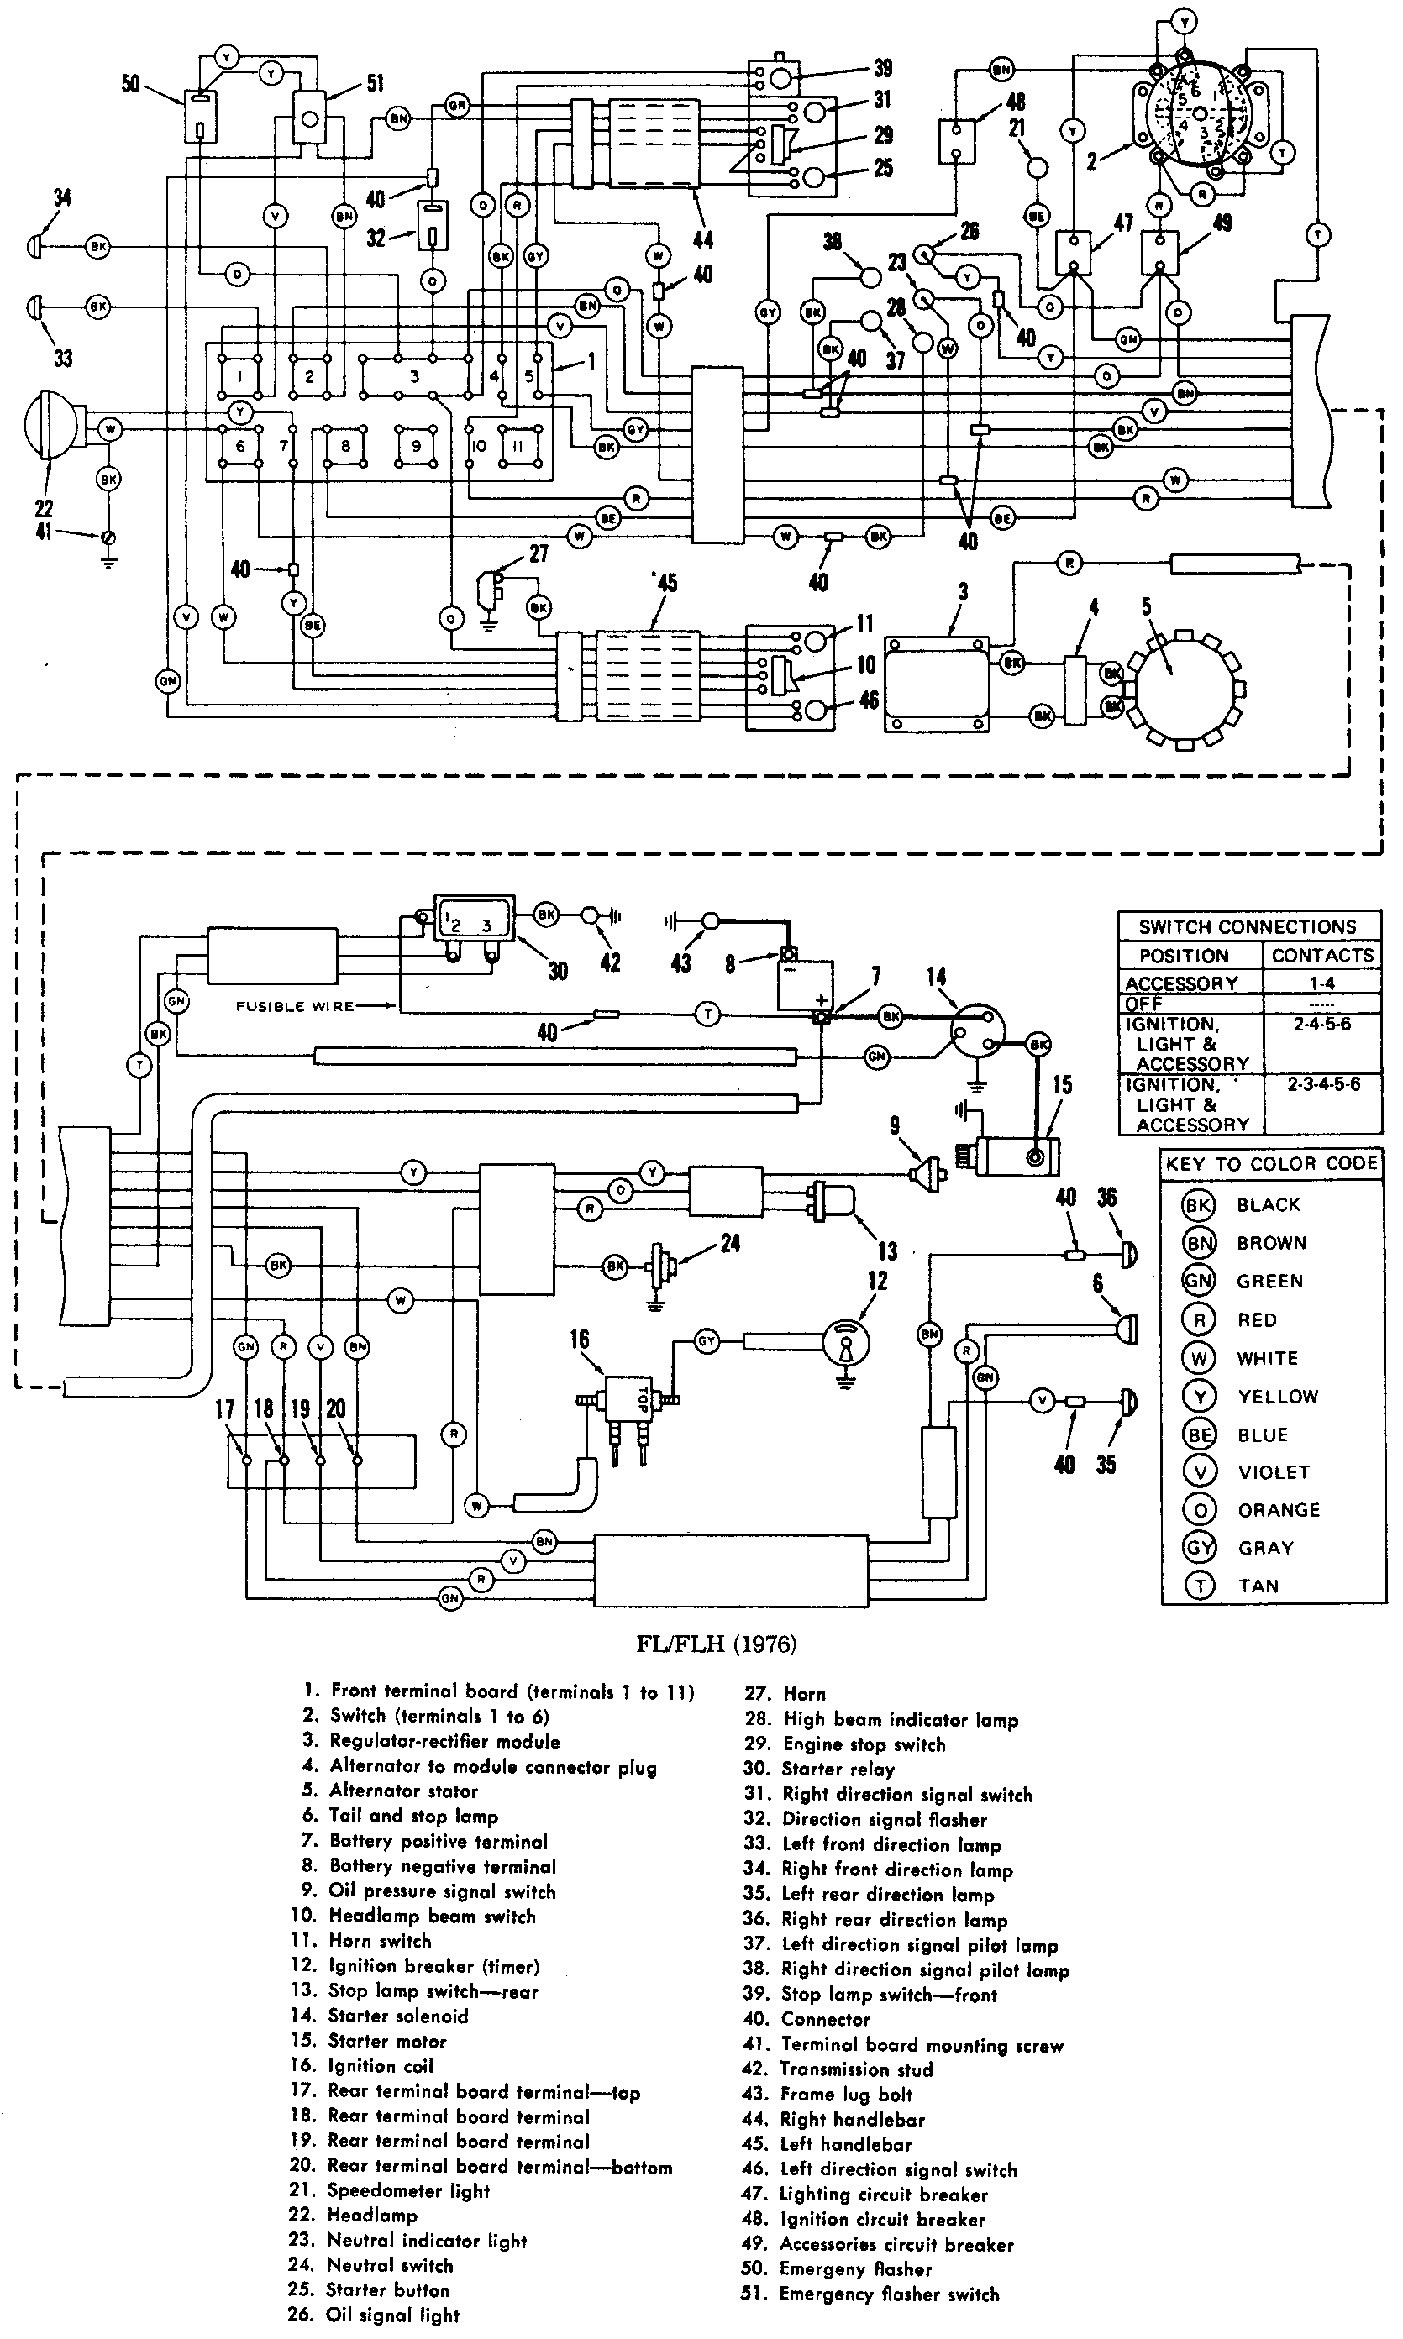 Harley Davidson Radio Wiring Diagram Harley Davidson Radio Wiring Diagram Free About Wiring Diagram and Of Harley Davidson Radio Wiring Diagram